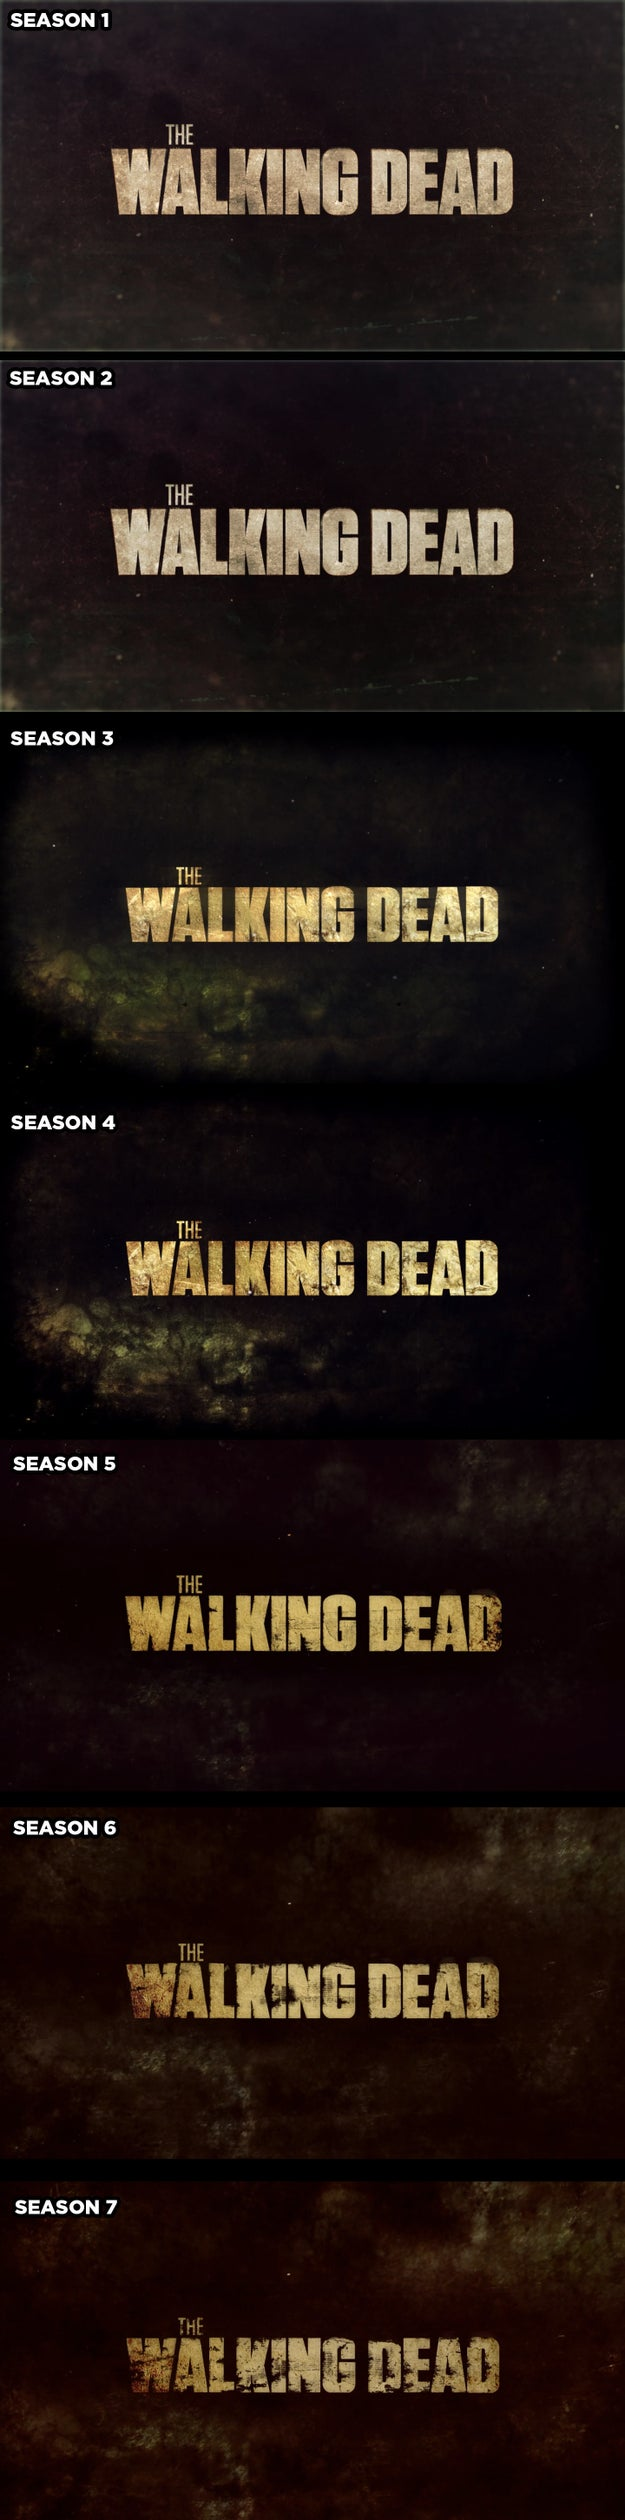 The title screen during the opening credits decays a little every season.